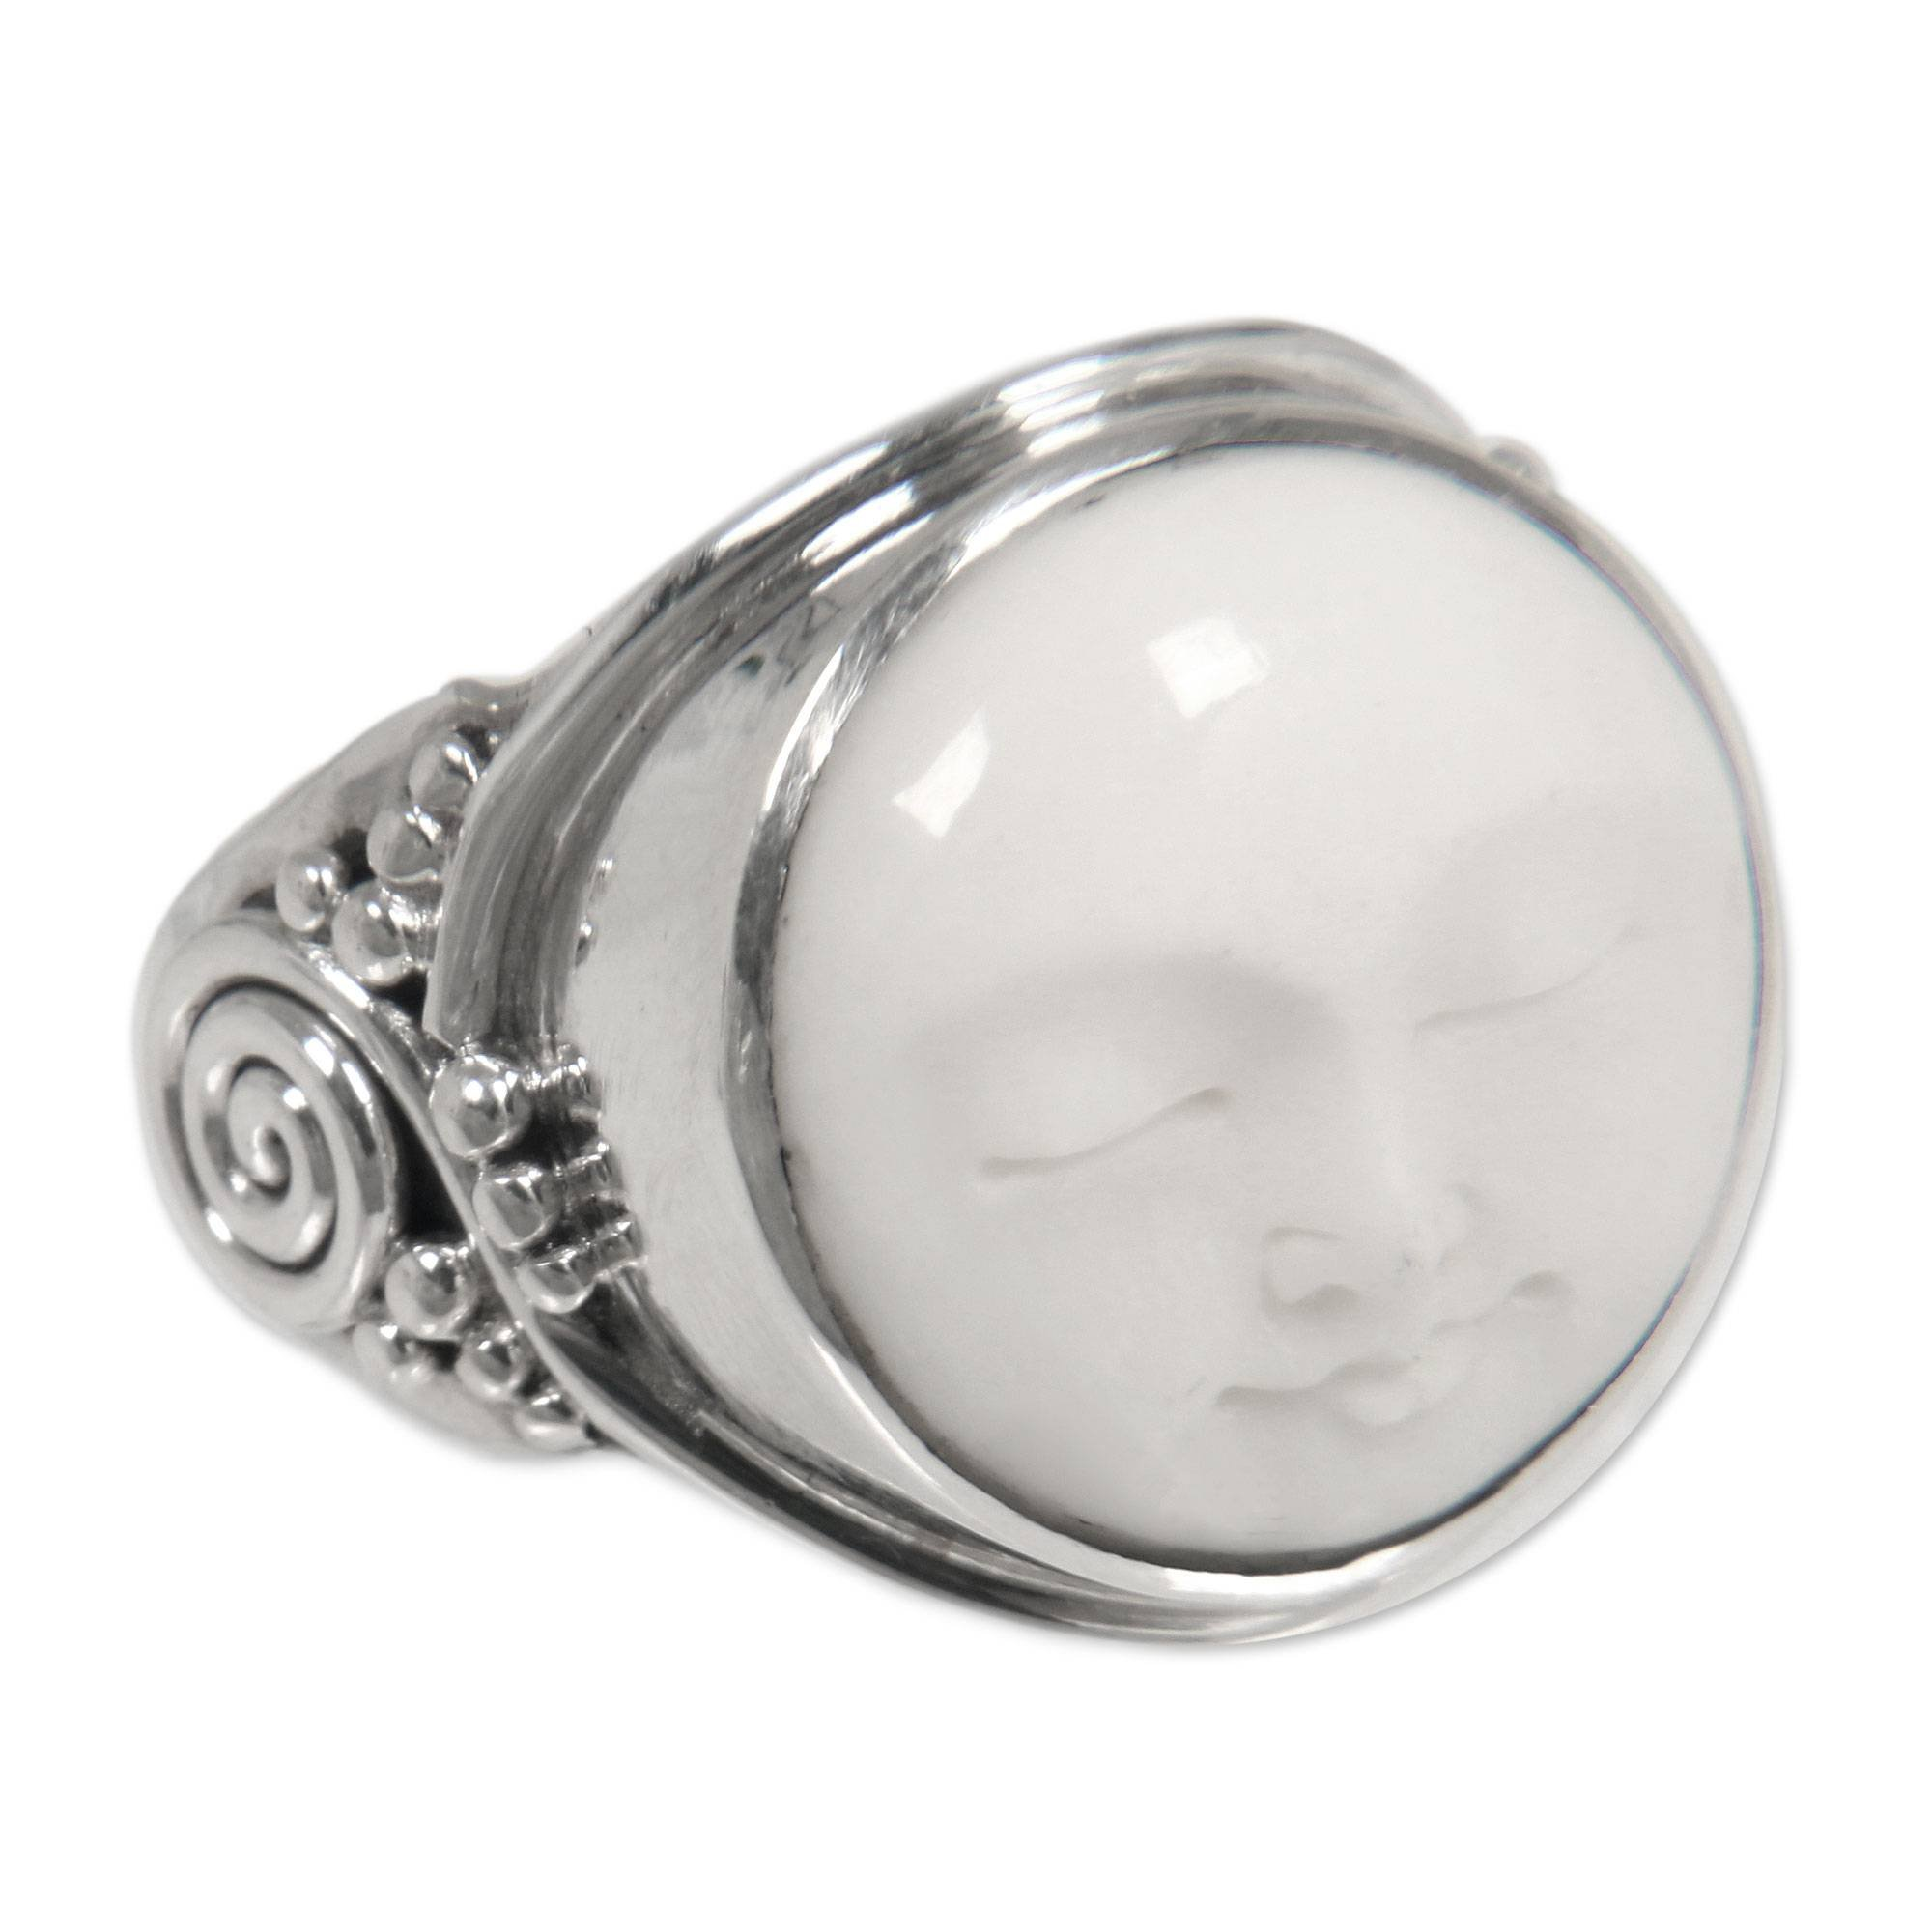 NOVICA .925 Sterling Silver Handcrafted Cow Bone Cocktail Ring 'Face of the Moon'